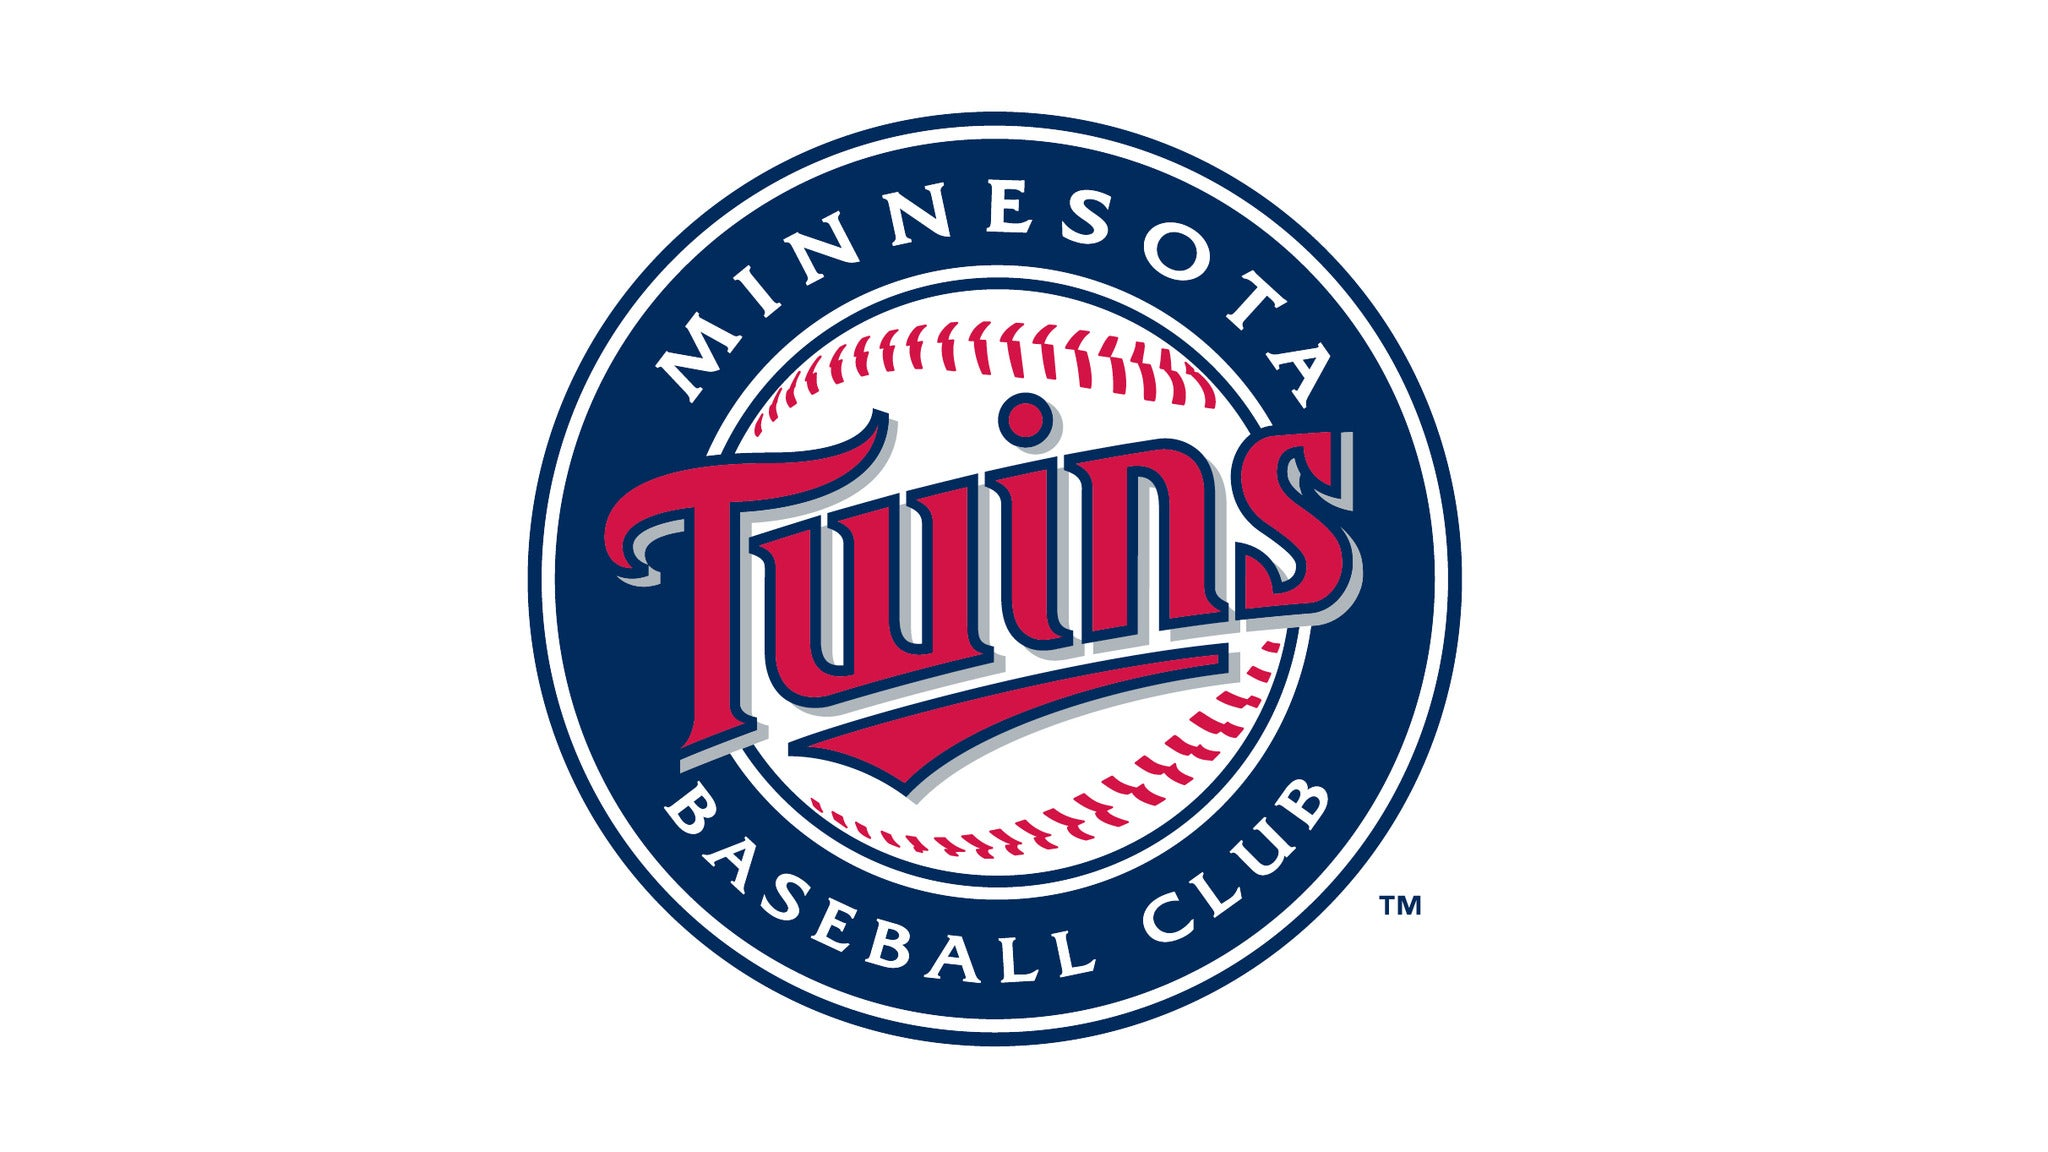 Minnesota Twins vs. Atlanta Braves at Target Field